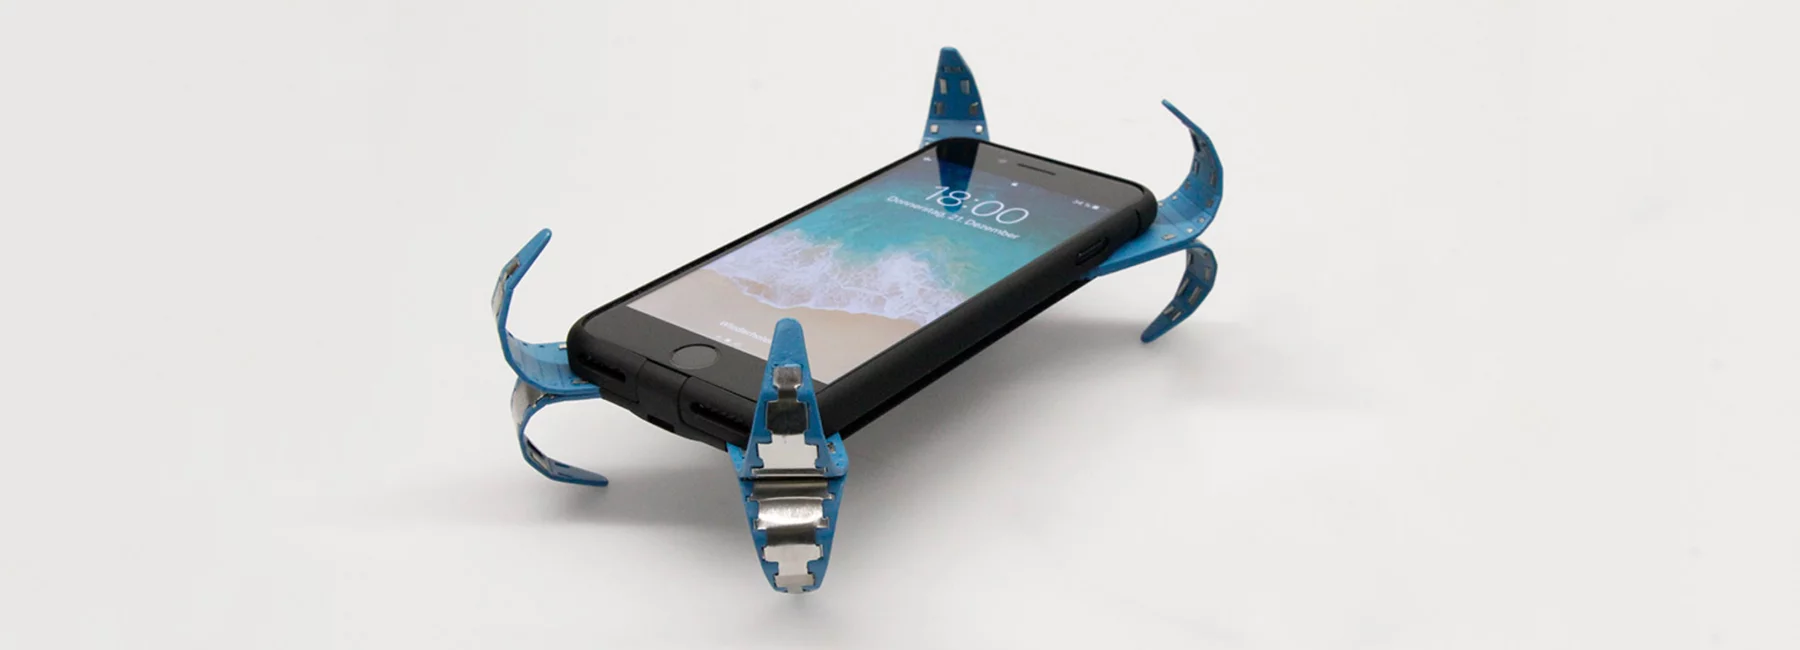 Never worry about dropping your phone again!